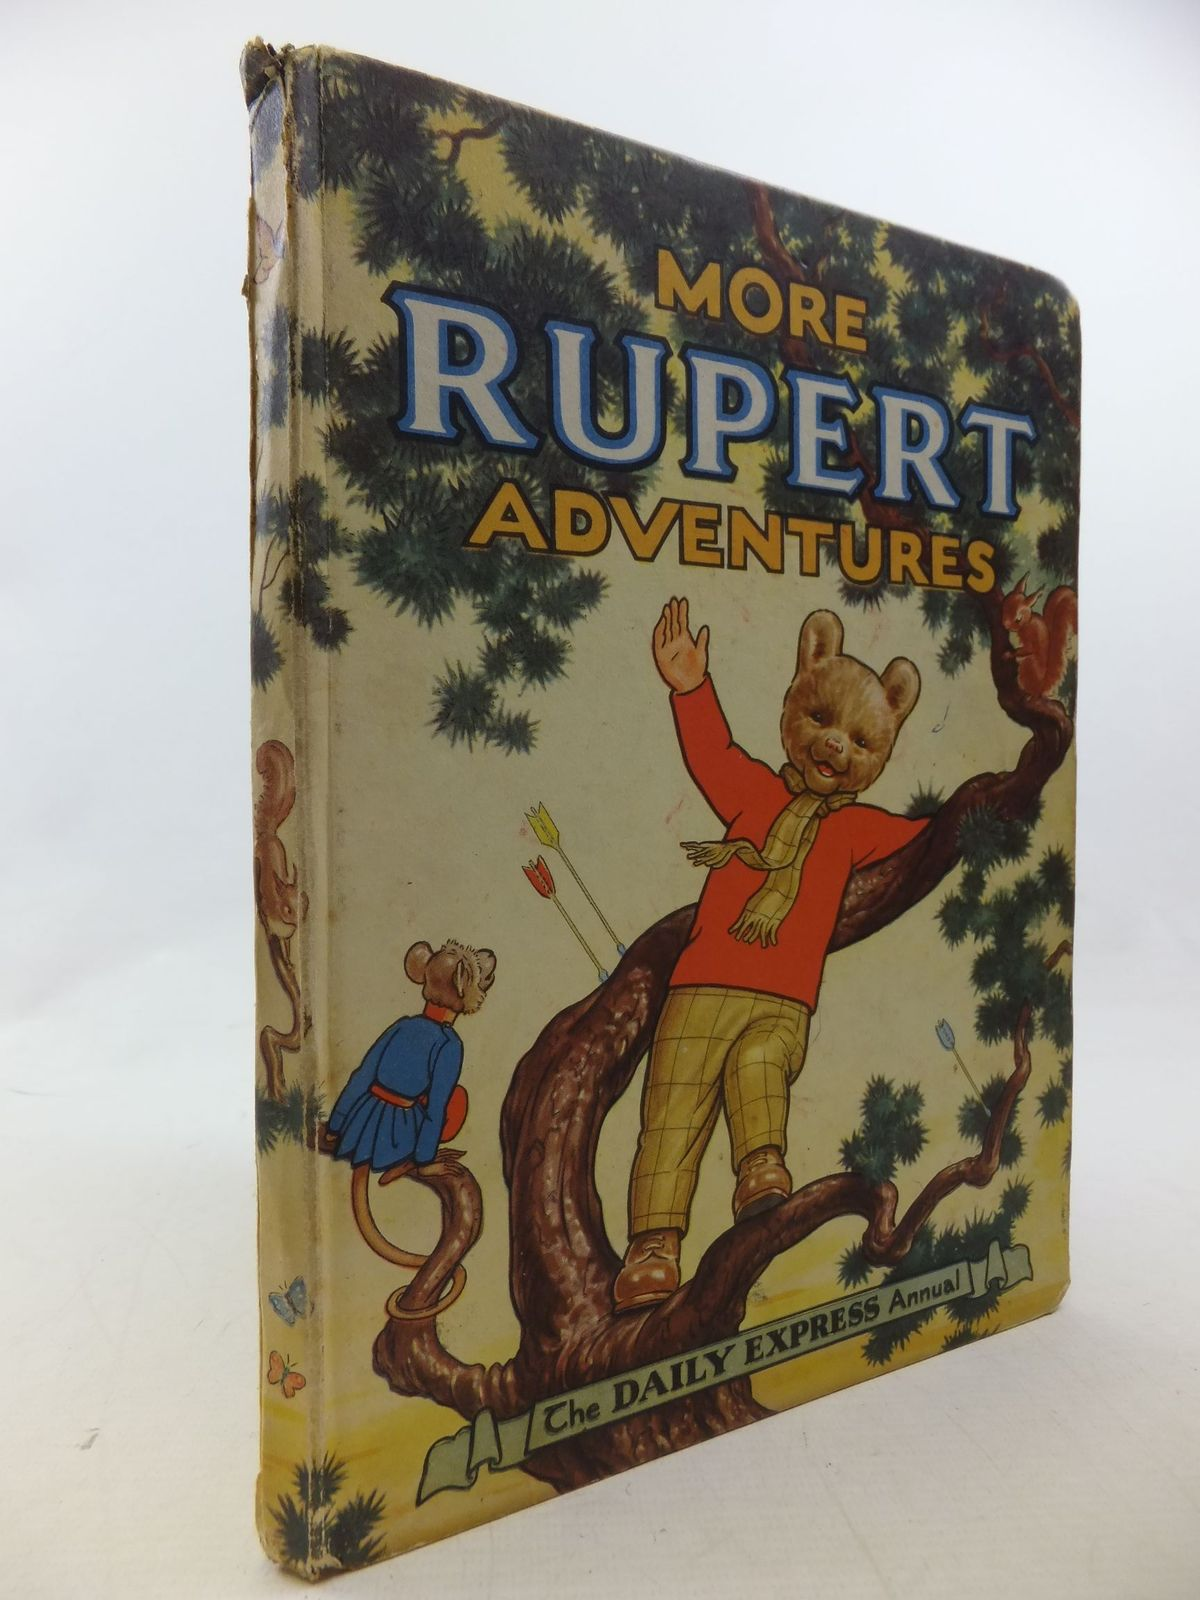 Photo of RUPERT ANNUAL 1952 - MORE RUPERT ADVENTURES written by Bestall, Alfred illustrated by Bestall, Alfred published by Daily Express (STOCK CODE: 1710613)  for sale by Stella & Rose's Books